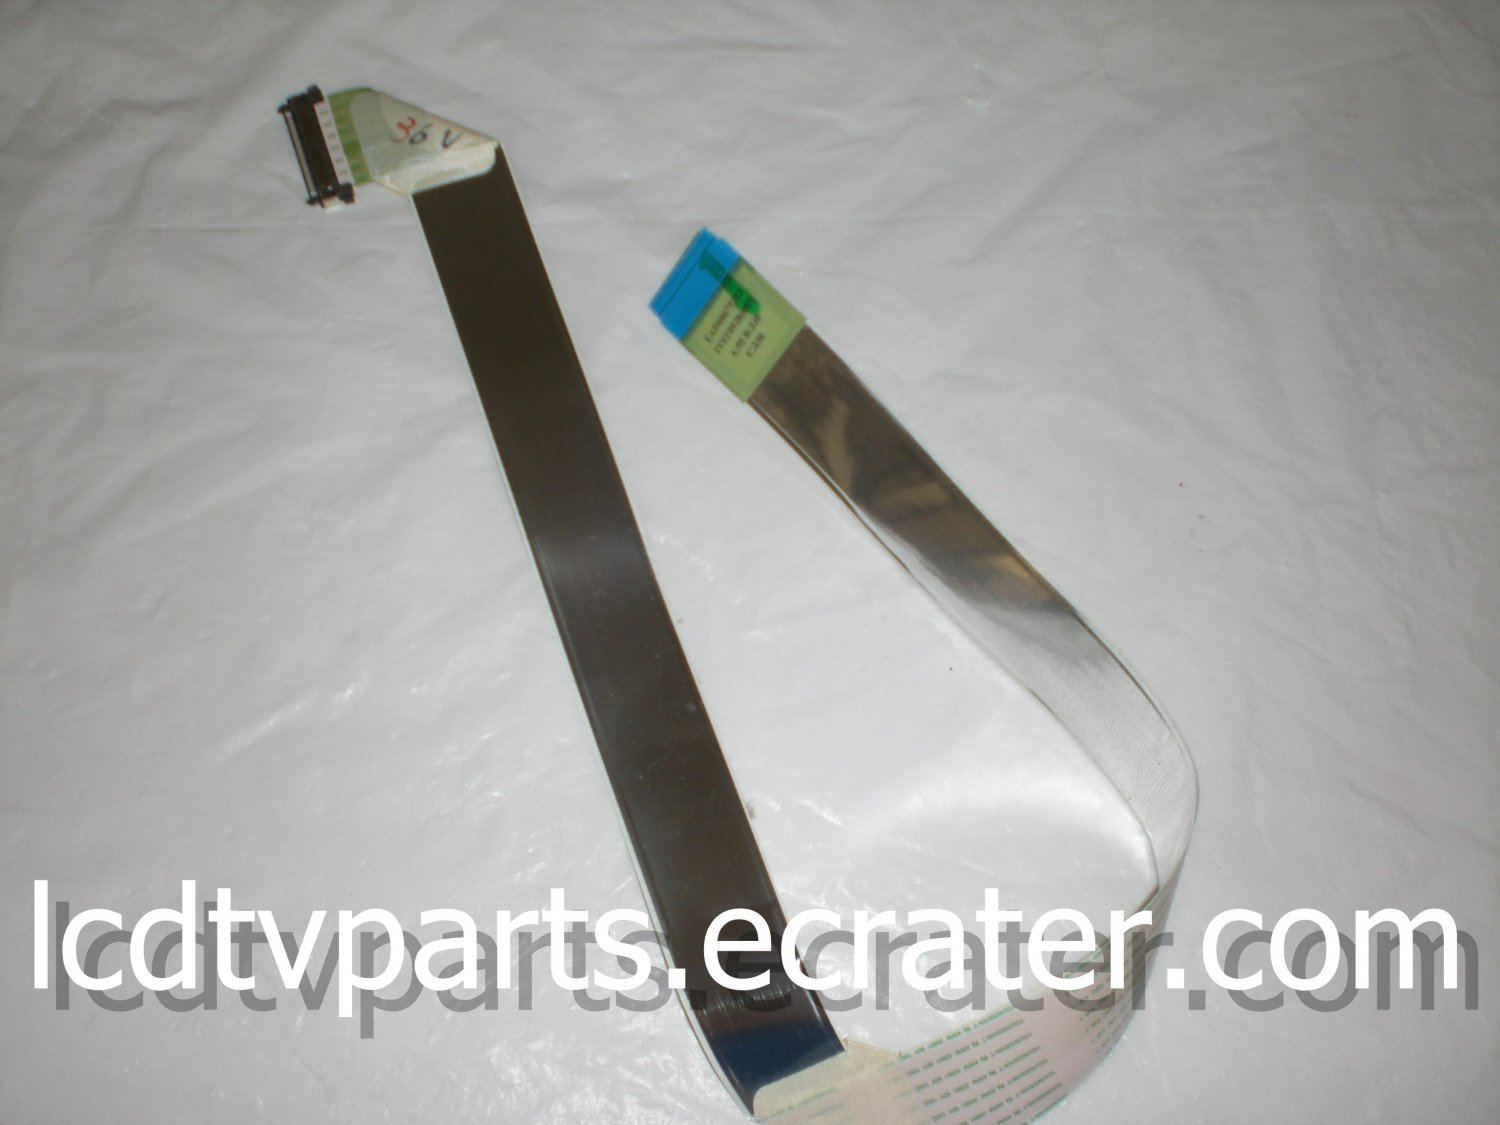 EAD60679313, 2YST0928(655), LVDS Cable for LG 47LH30